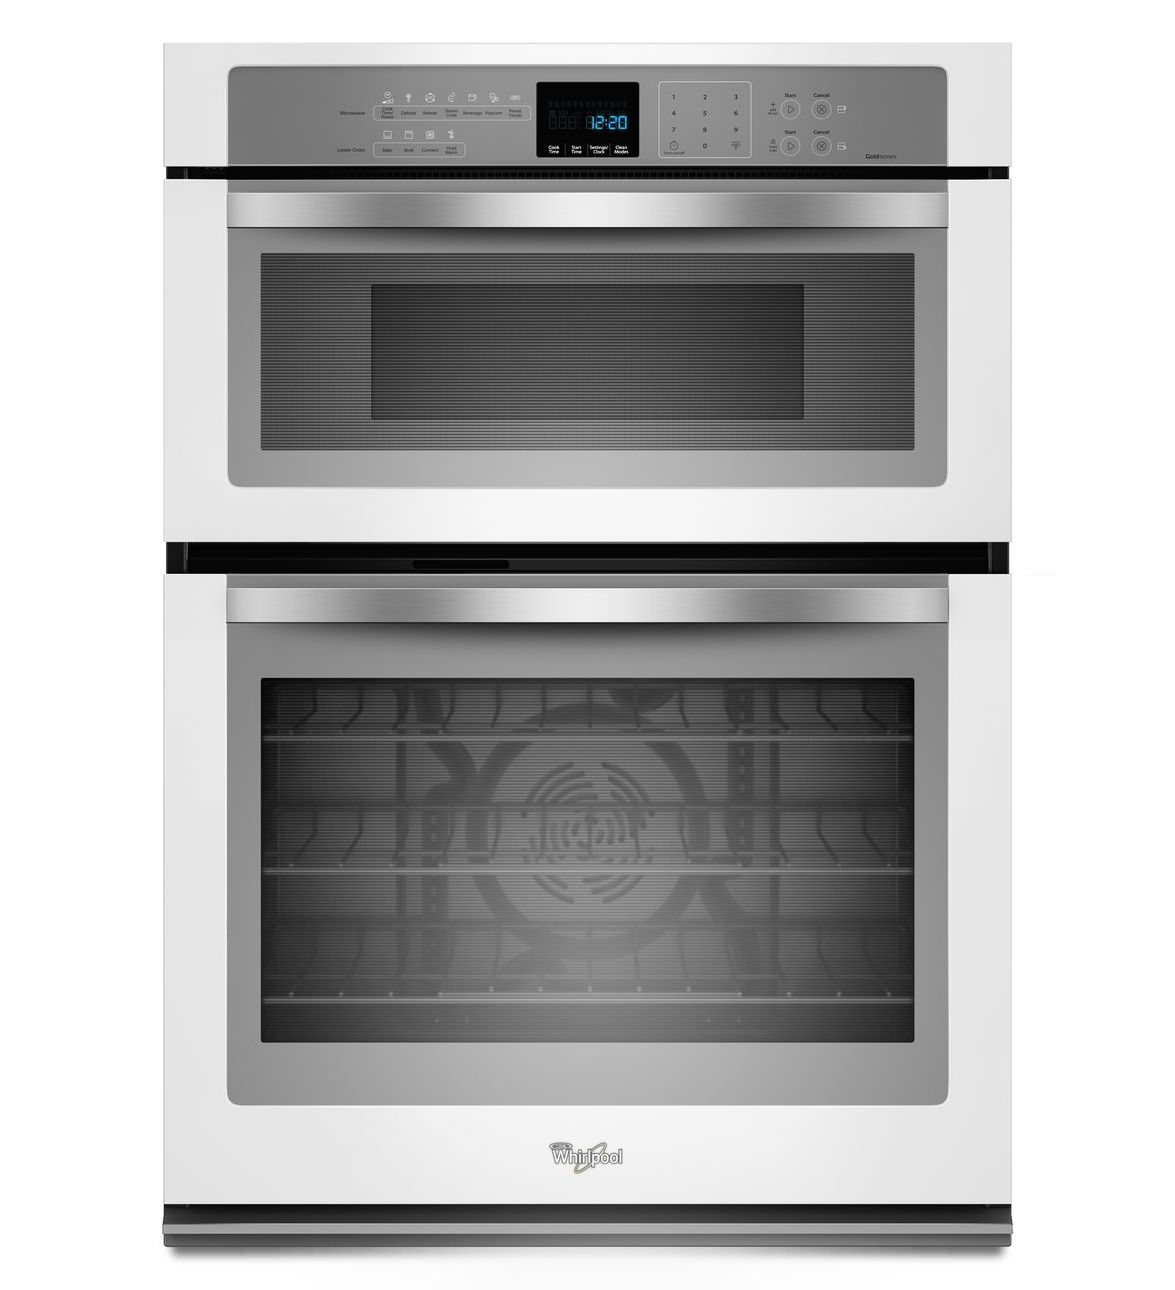 Whirlpool Gold 30 In Electric Convection Wall Oven With Built Microwave White Ice Cu Capacity And Provide Enough